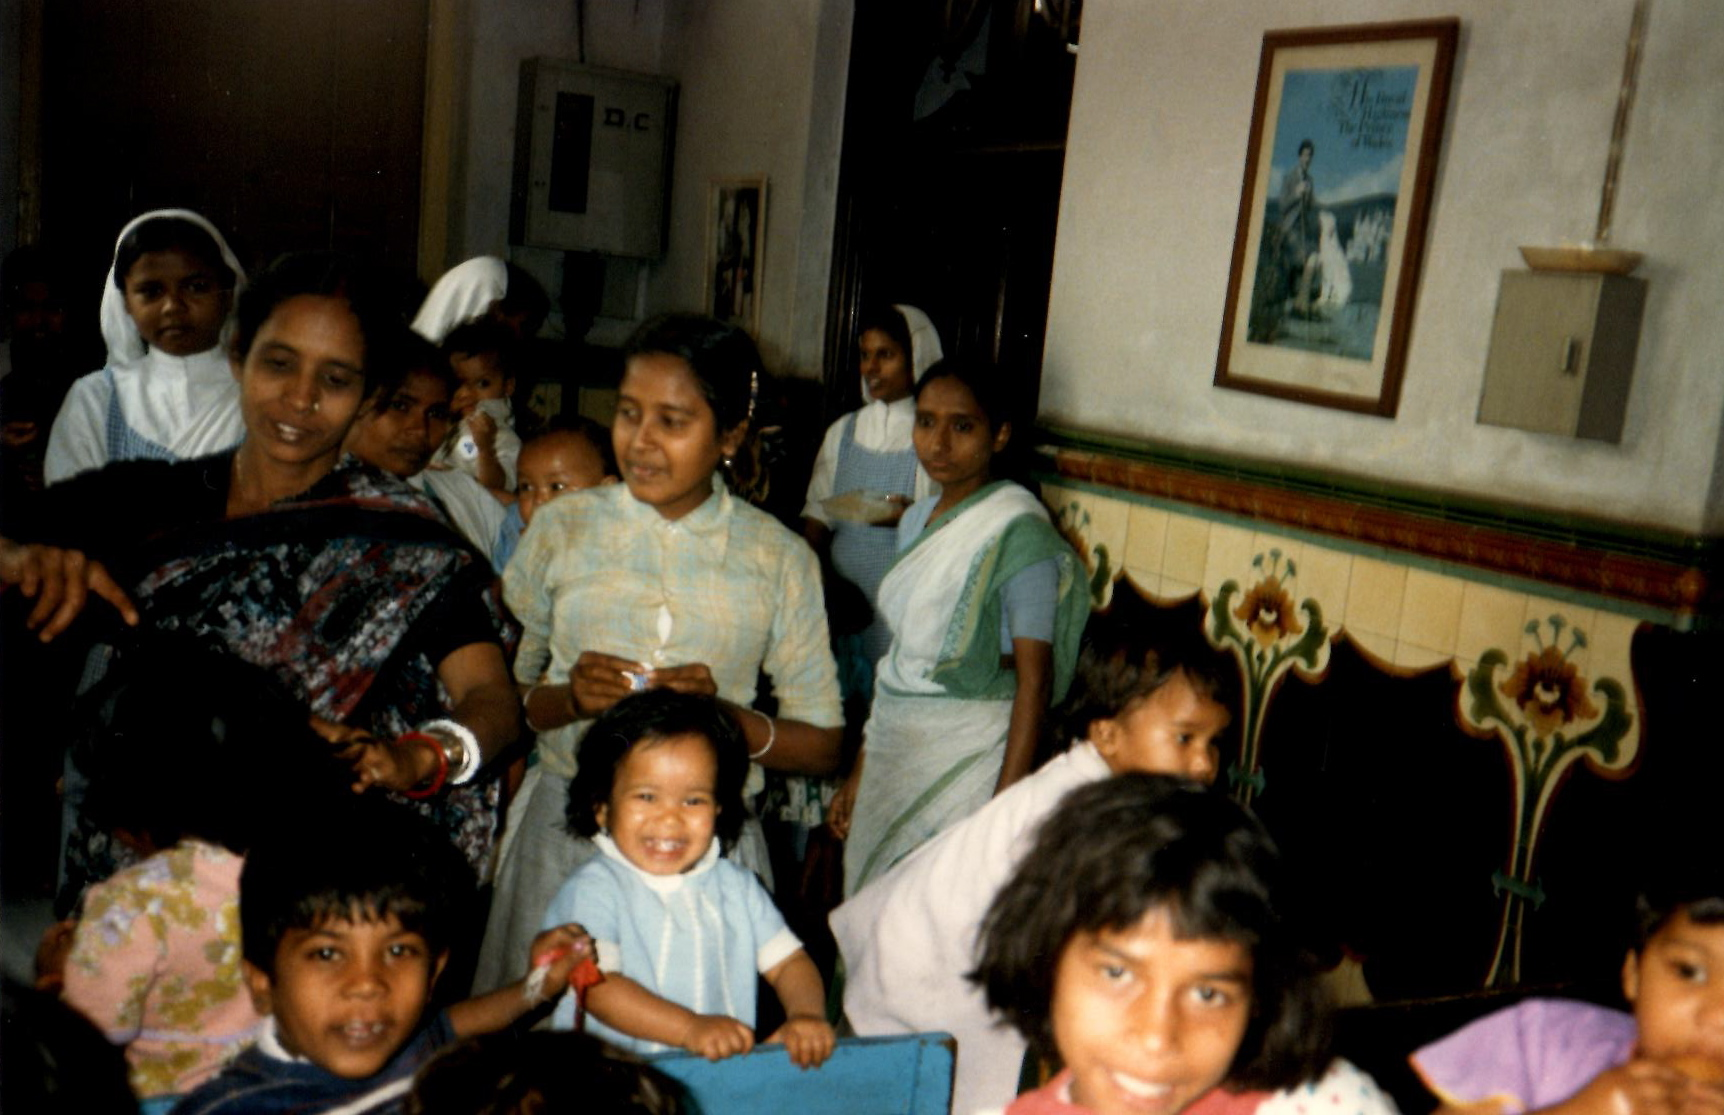 Image from 1986 of children and nuns in a Calcutta, India, orphanage operated by Mother Teresa. The photo was shot during a visit by Brigham Young University's Young Ambassadors.